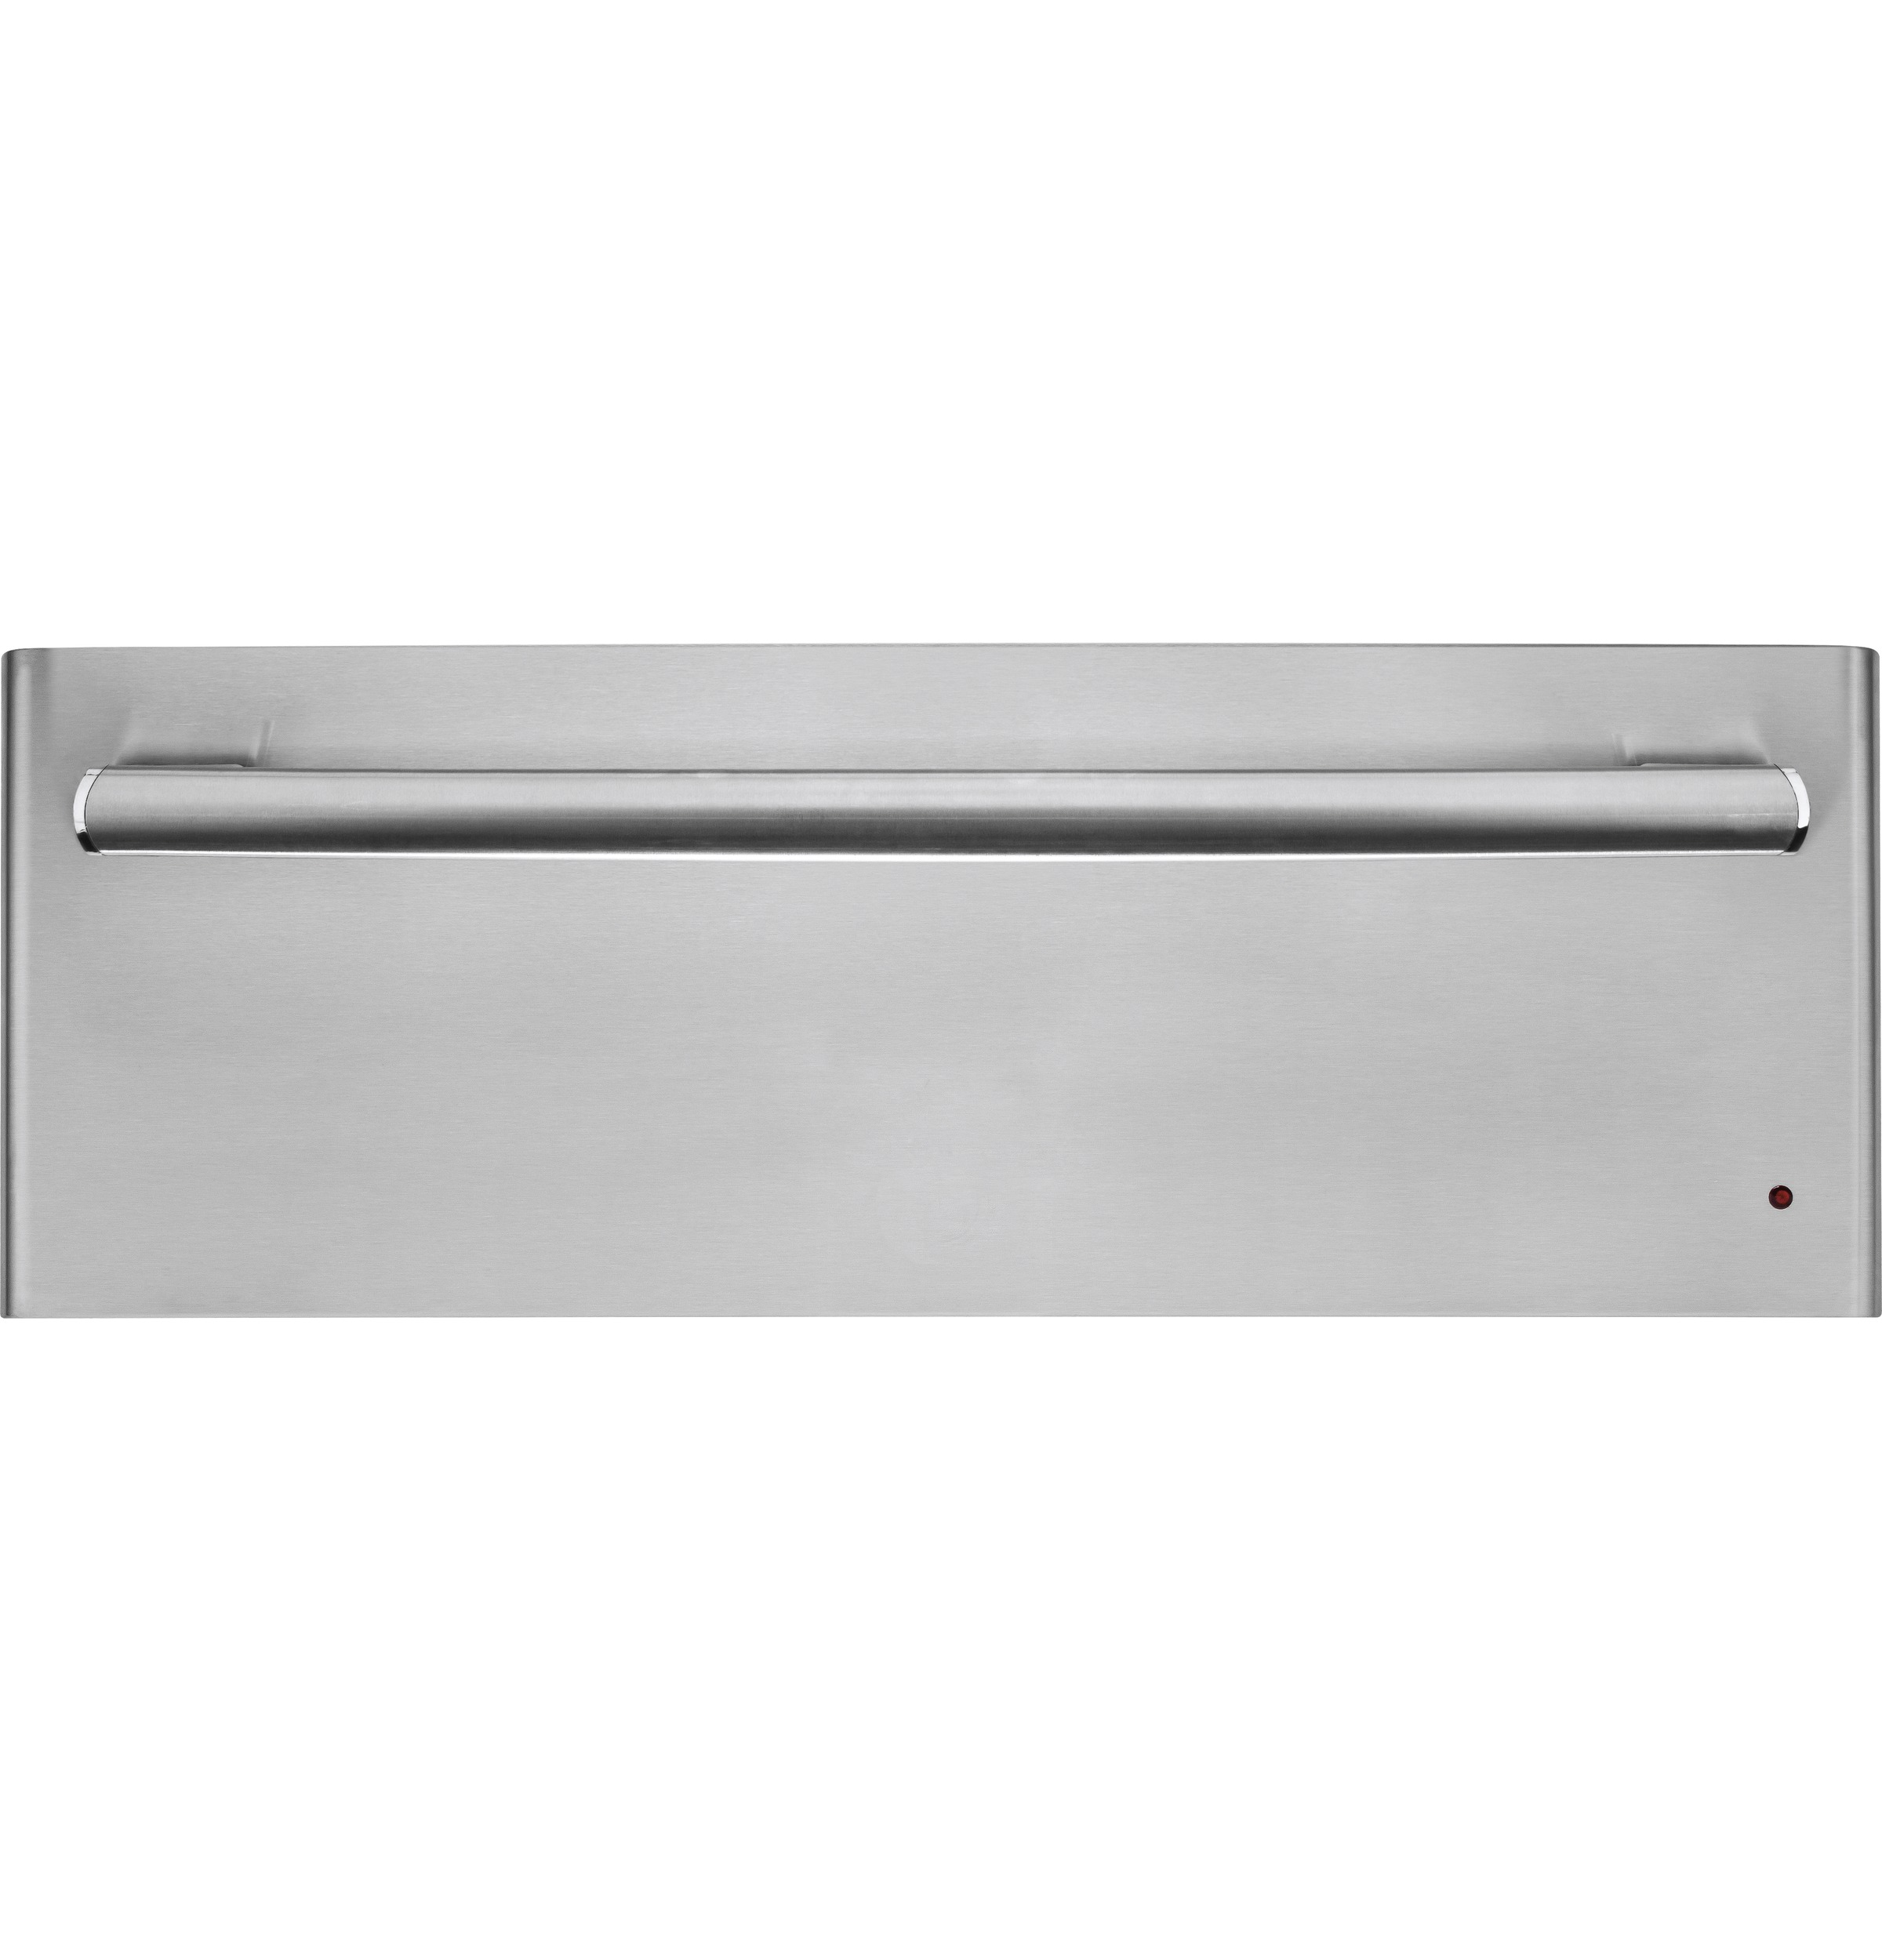 "Model: PJ7000SFSS | GE Profile GE Profile™ Series 27"" Warming Drawer"